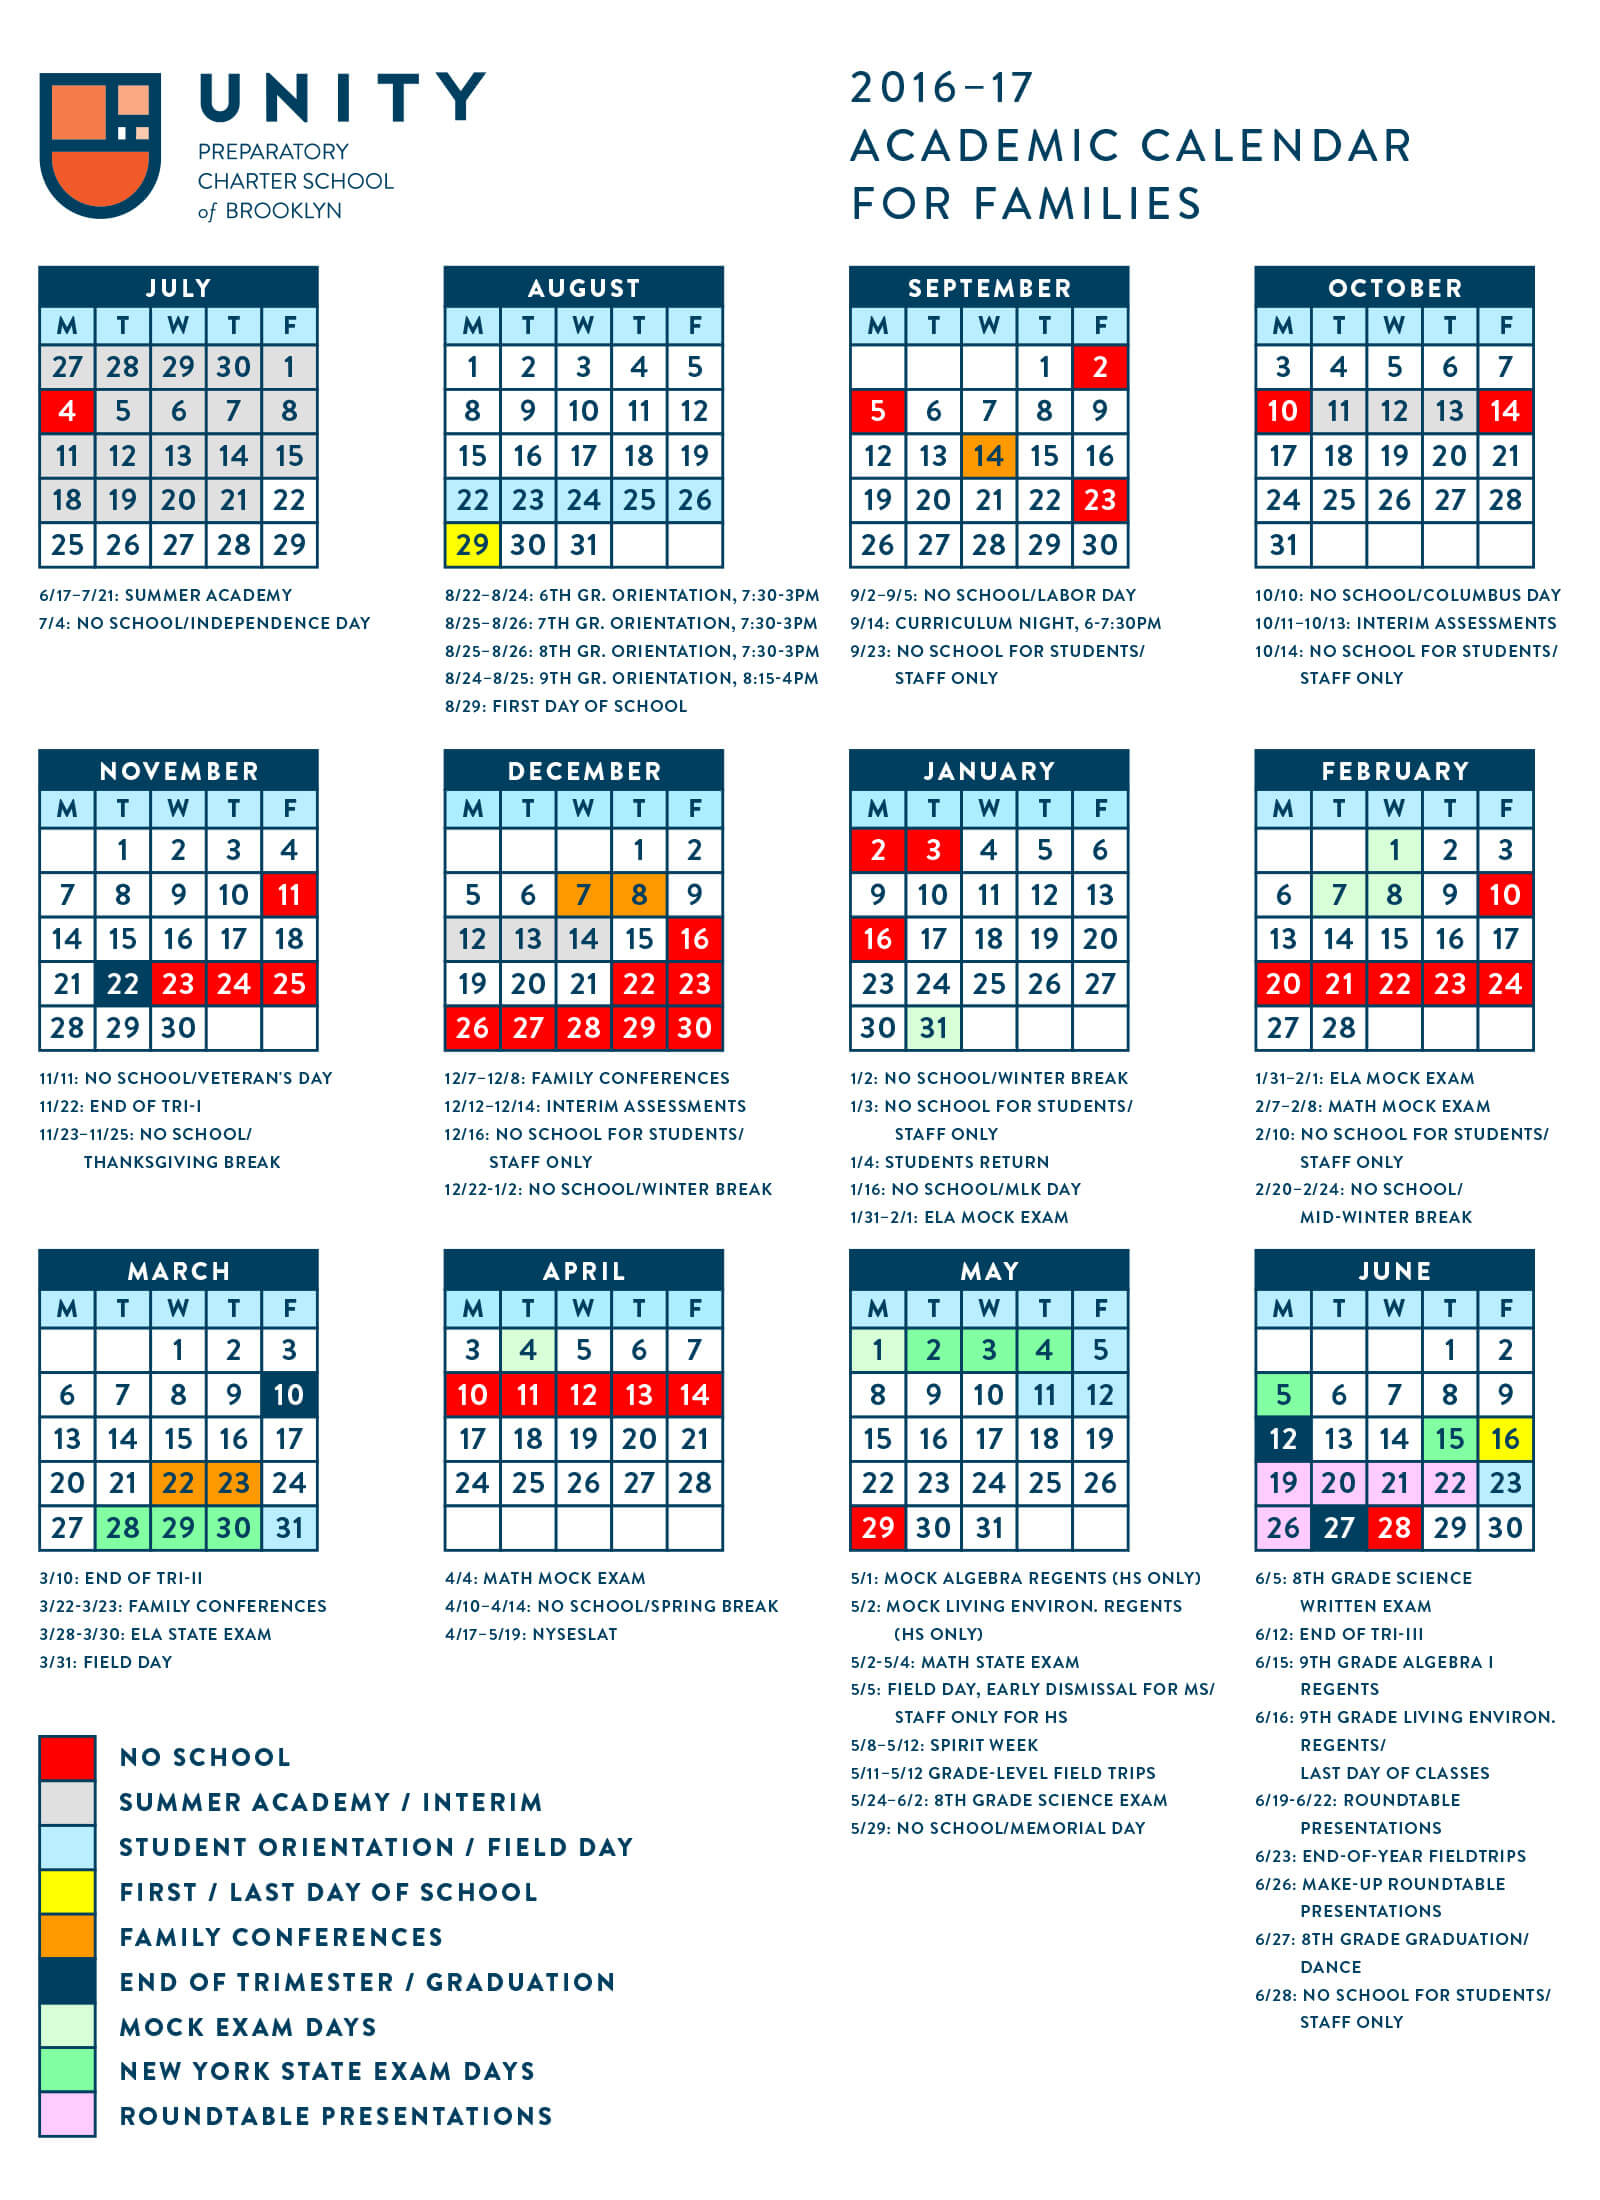 Brooklyn Law School Academic Calendar | | 360 Academic Calendar With Brooklyn Lawacadrmiccalendar